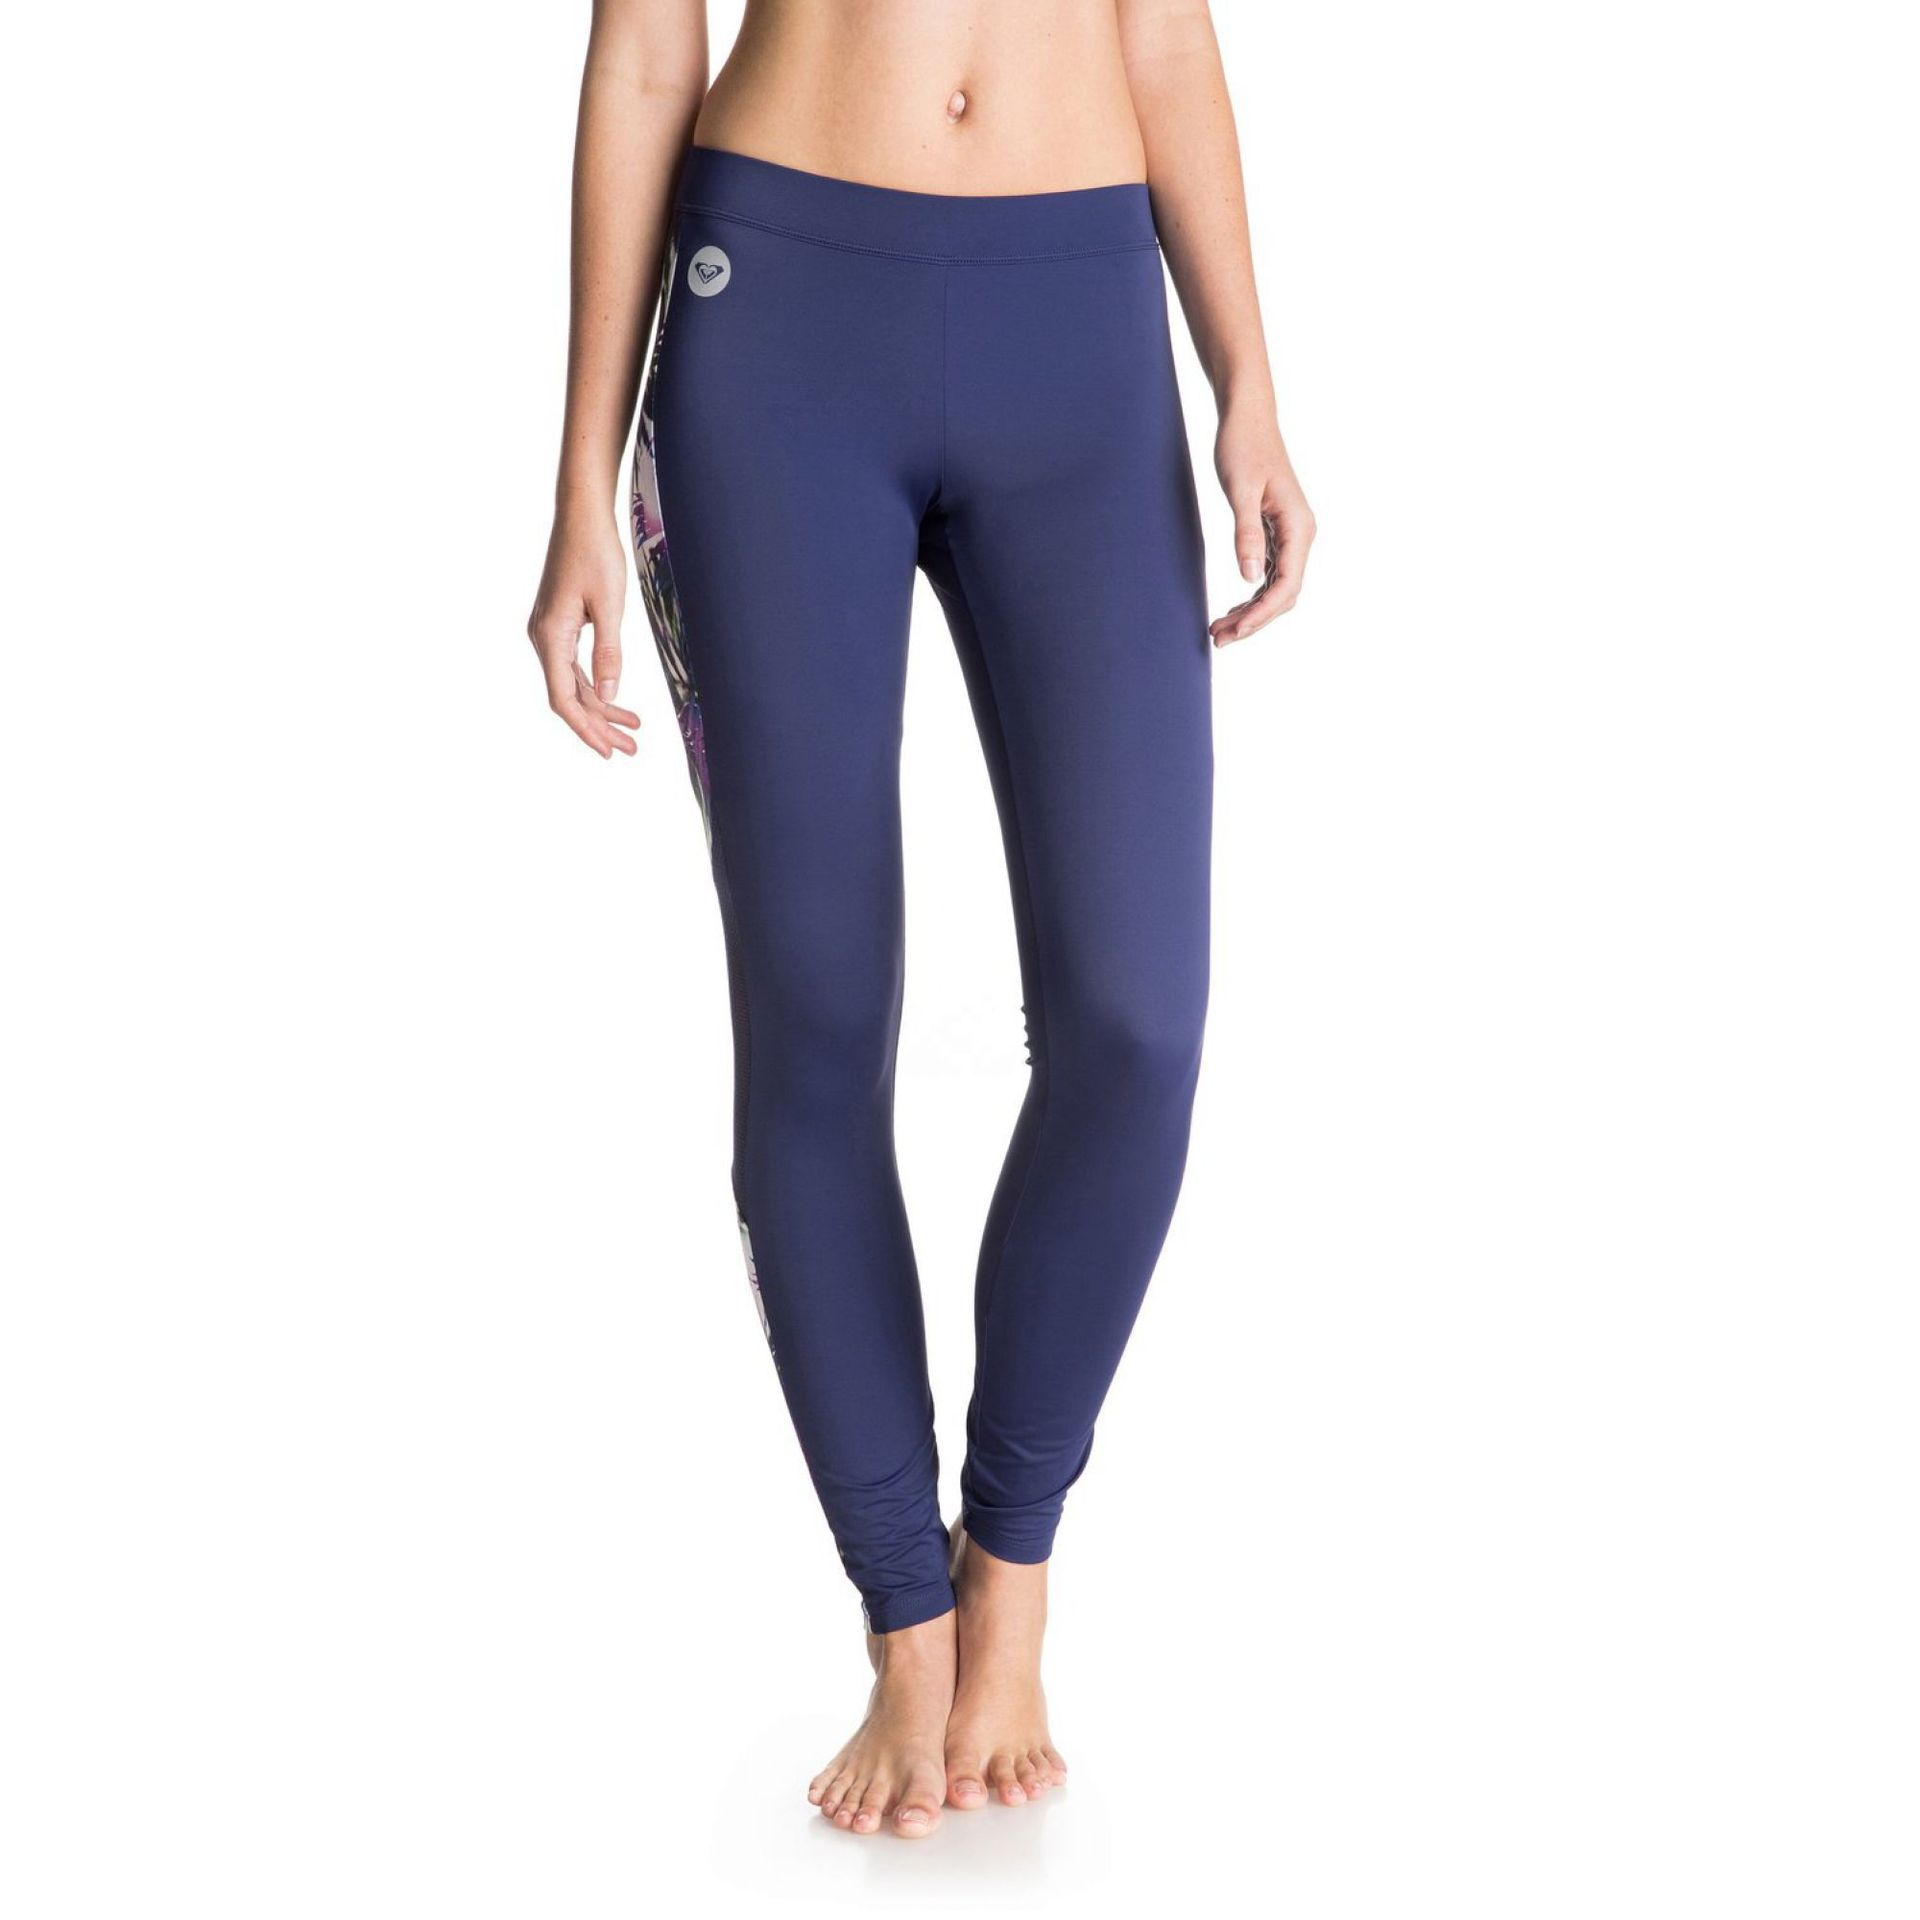 LEGINSY ROXY CARIBBEAN SUNSET SURF LEGGINS